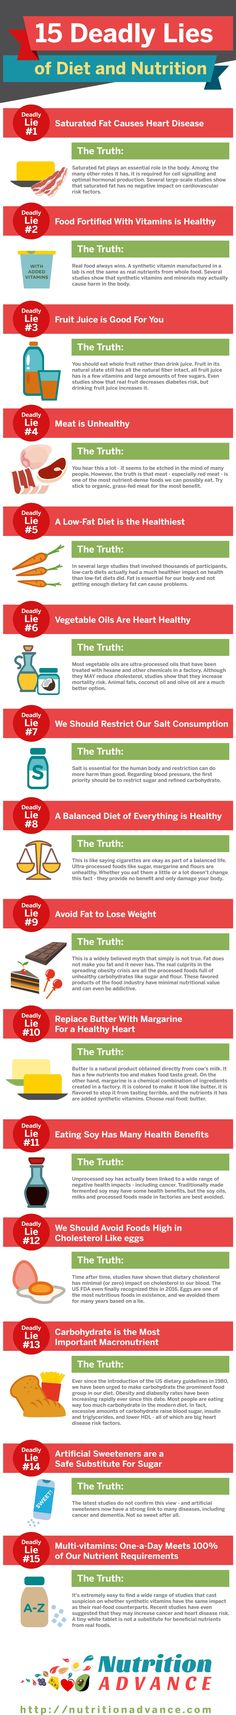 Here are some of the biggest lies, myths, and misconceptions about conventional #nutrition ideas. Includes information on butter vs margarine, fruit juice, synthetic vitamins and other supplements, vegetable oils, saturated fat, sugar, weight, low-fat vs low-carb, cholesterol, meat, and more. #NutritionPlans